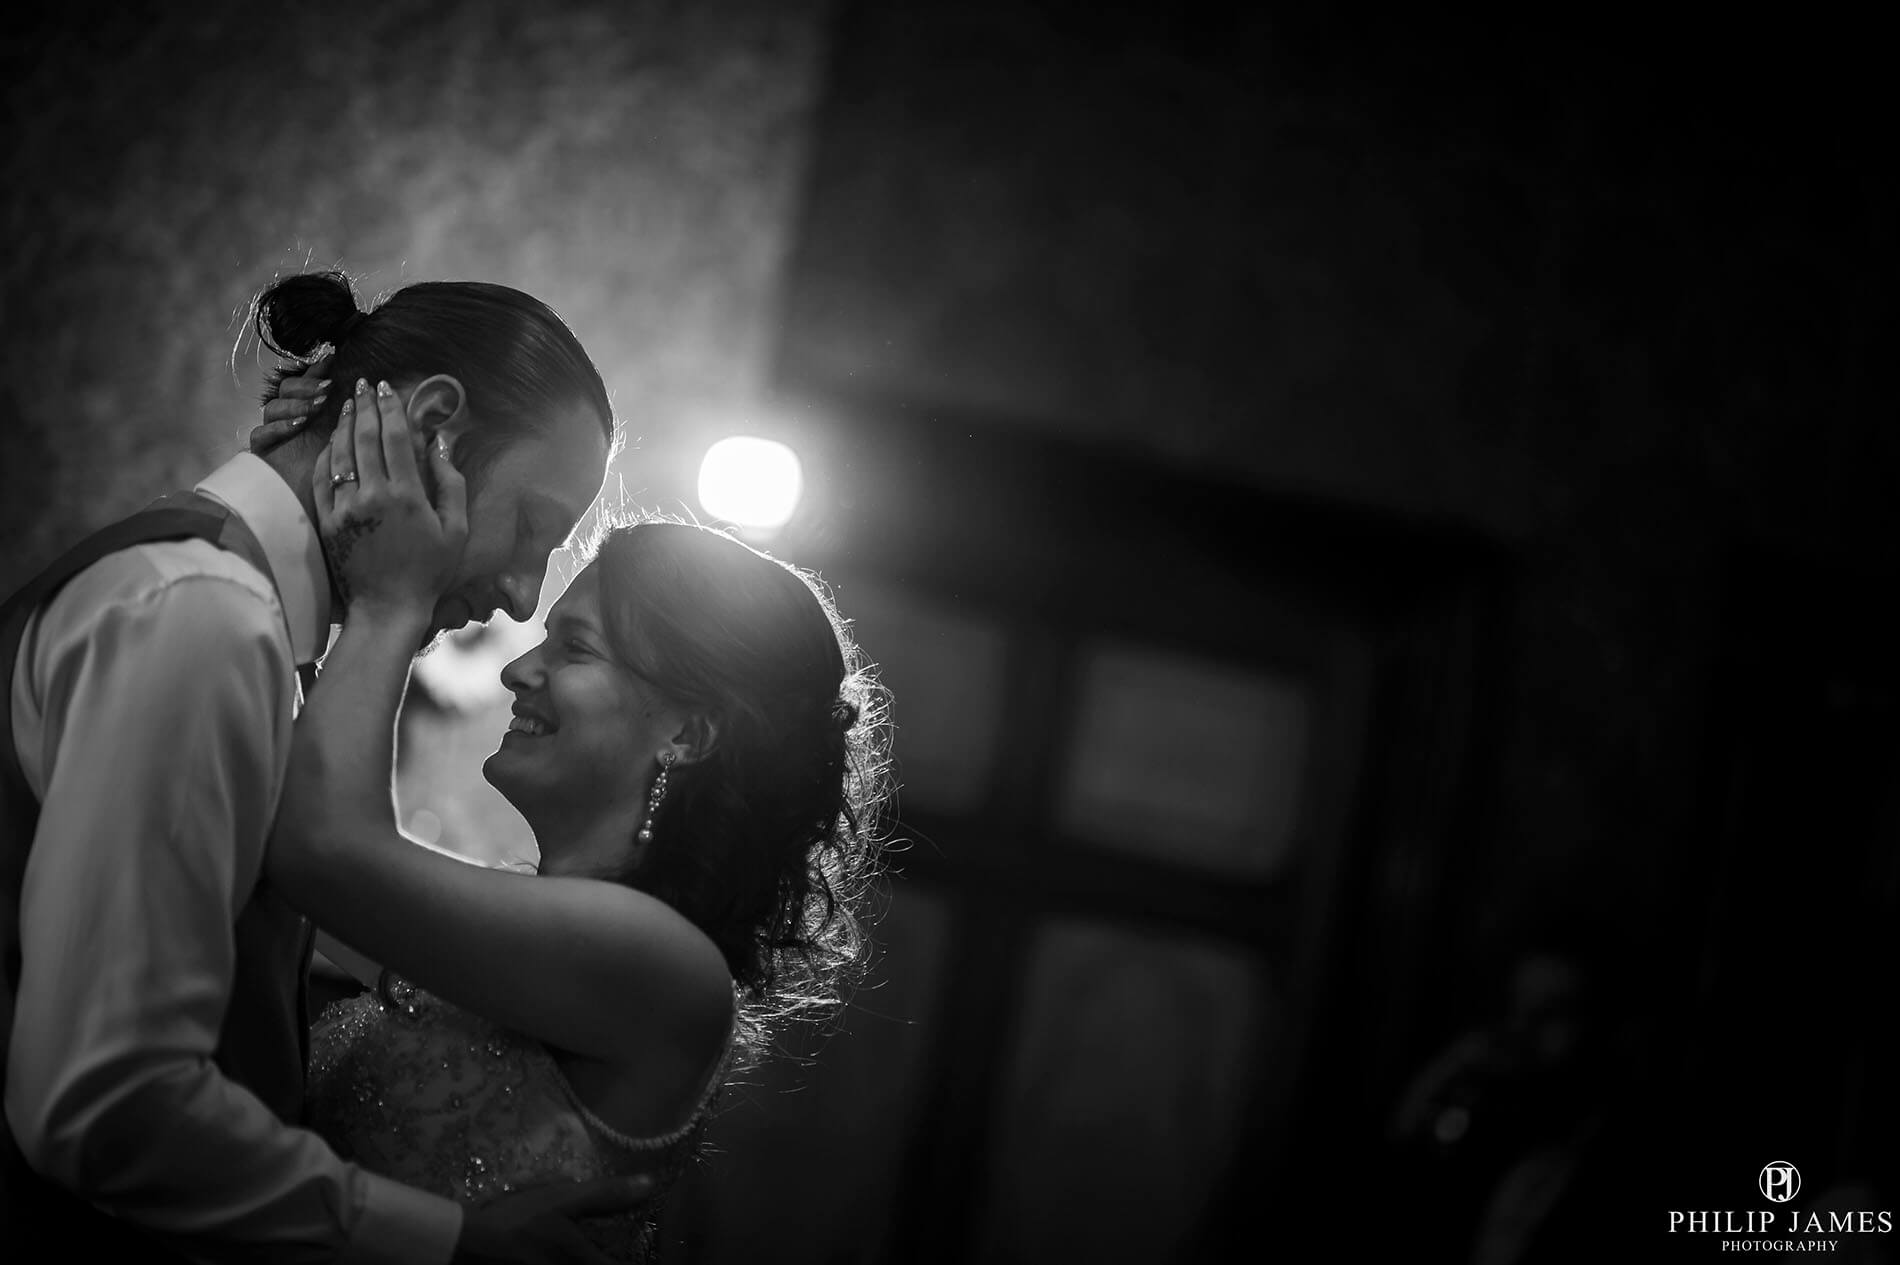 Highbury Hall Wedding Photographer - Philip James covers Birmingham, The West Midlands, Solihull and Destination weddings. Wedding photography Birmingham is my passion